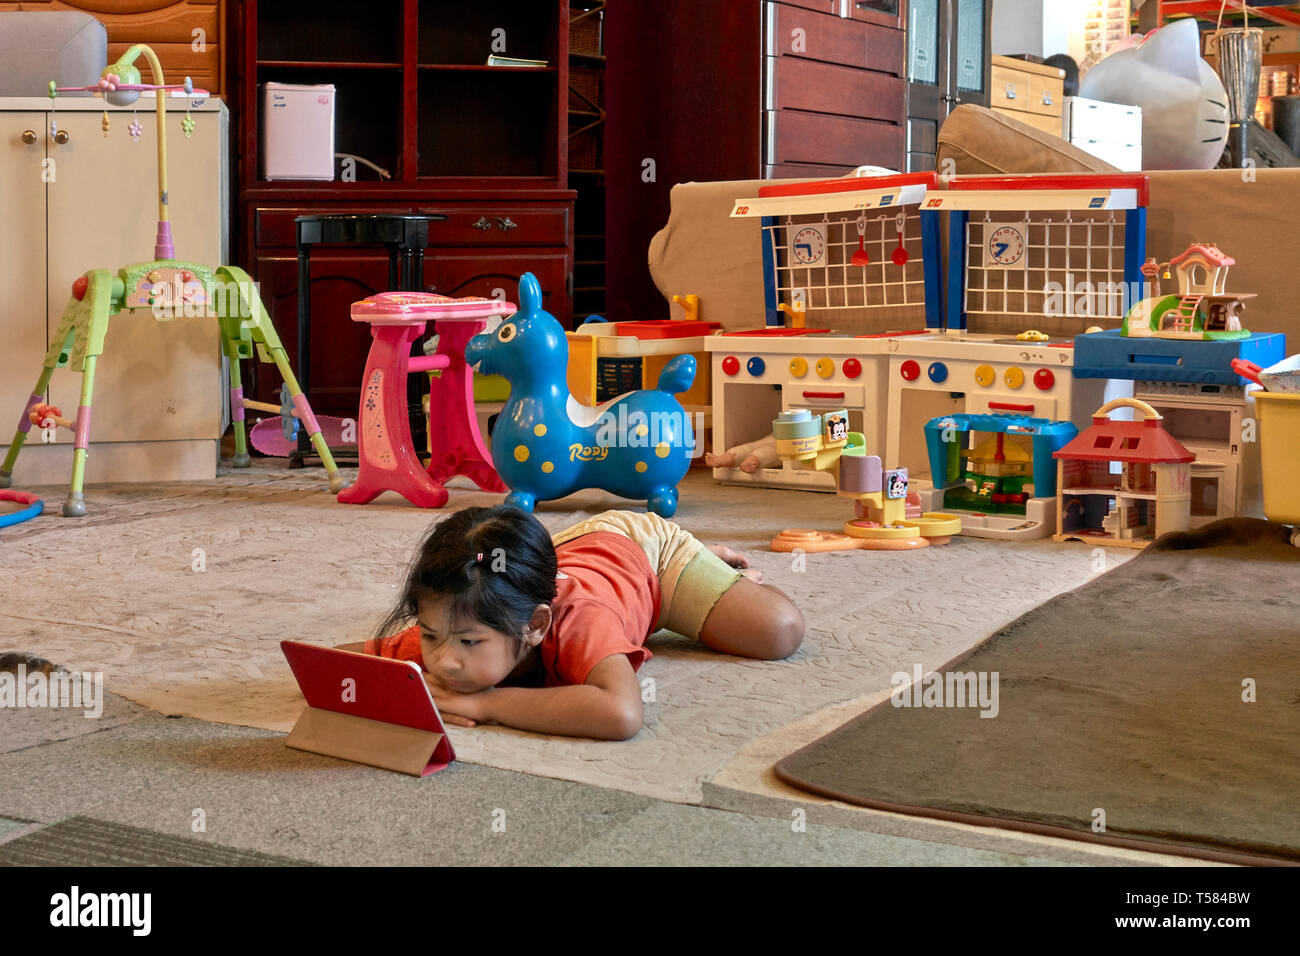 Young girl engrossed with her modern Ipad and ignoring her traditional toys. Concept of old v new. - Stock Image